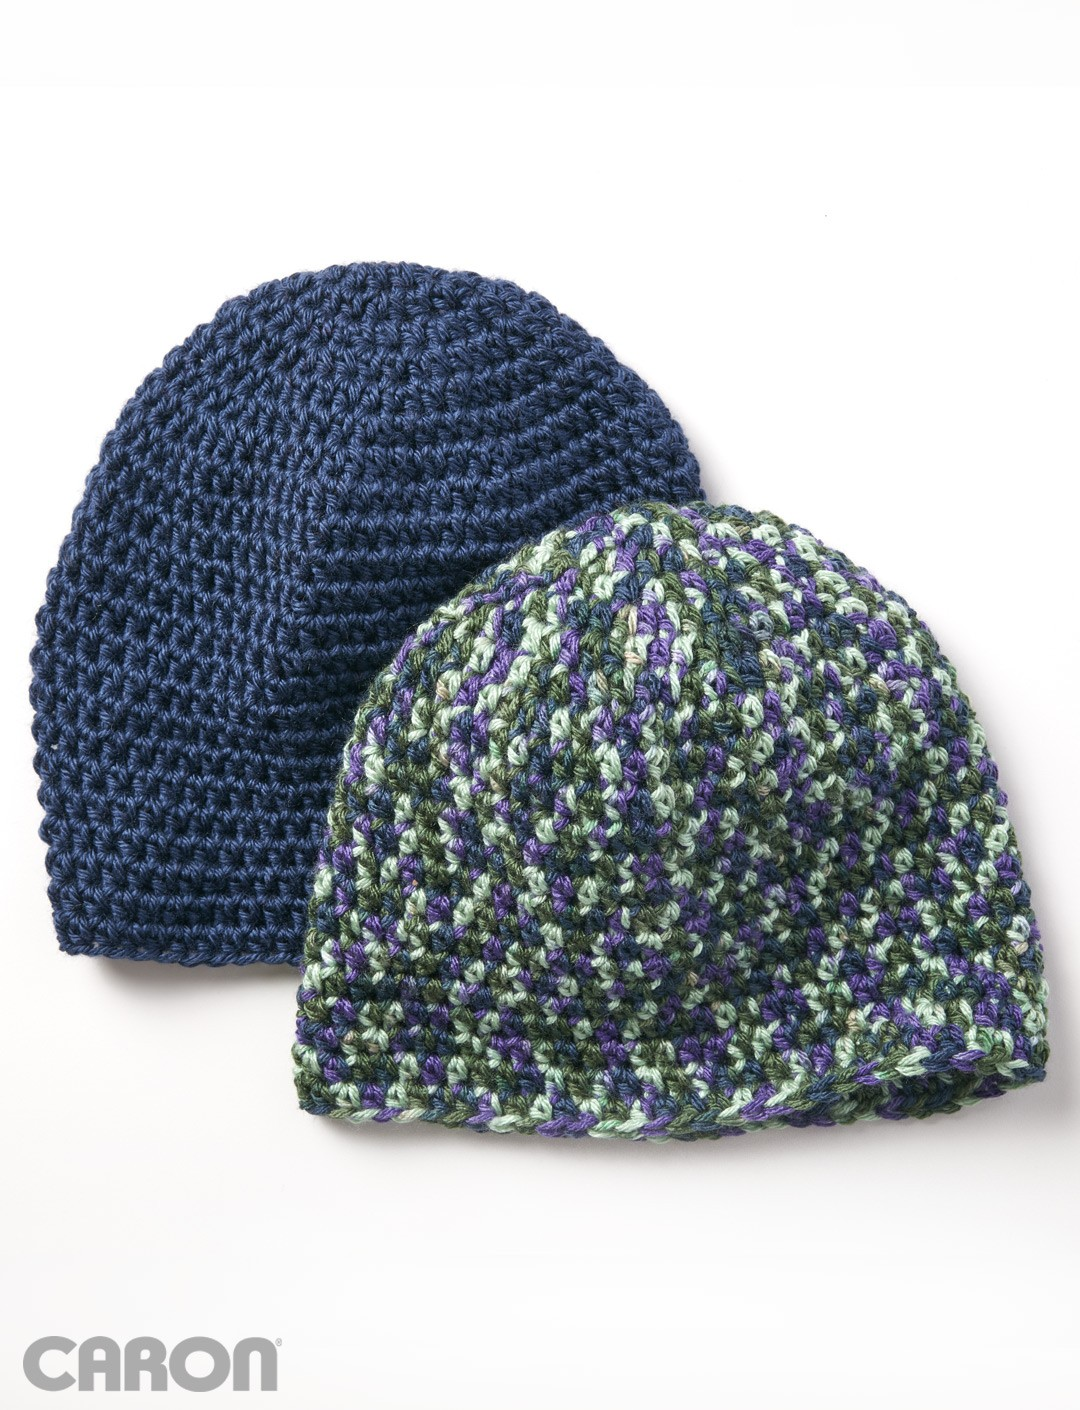 Beginner Crochet Patterns Beanie : Caron Beginner Beanie, Crochet Pattern Yarnspirations